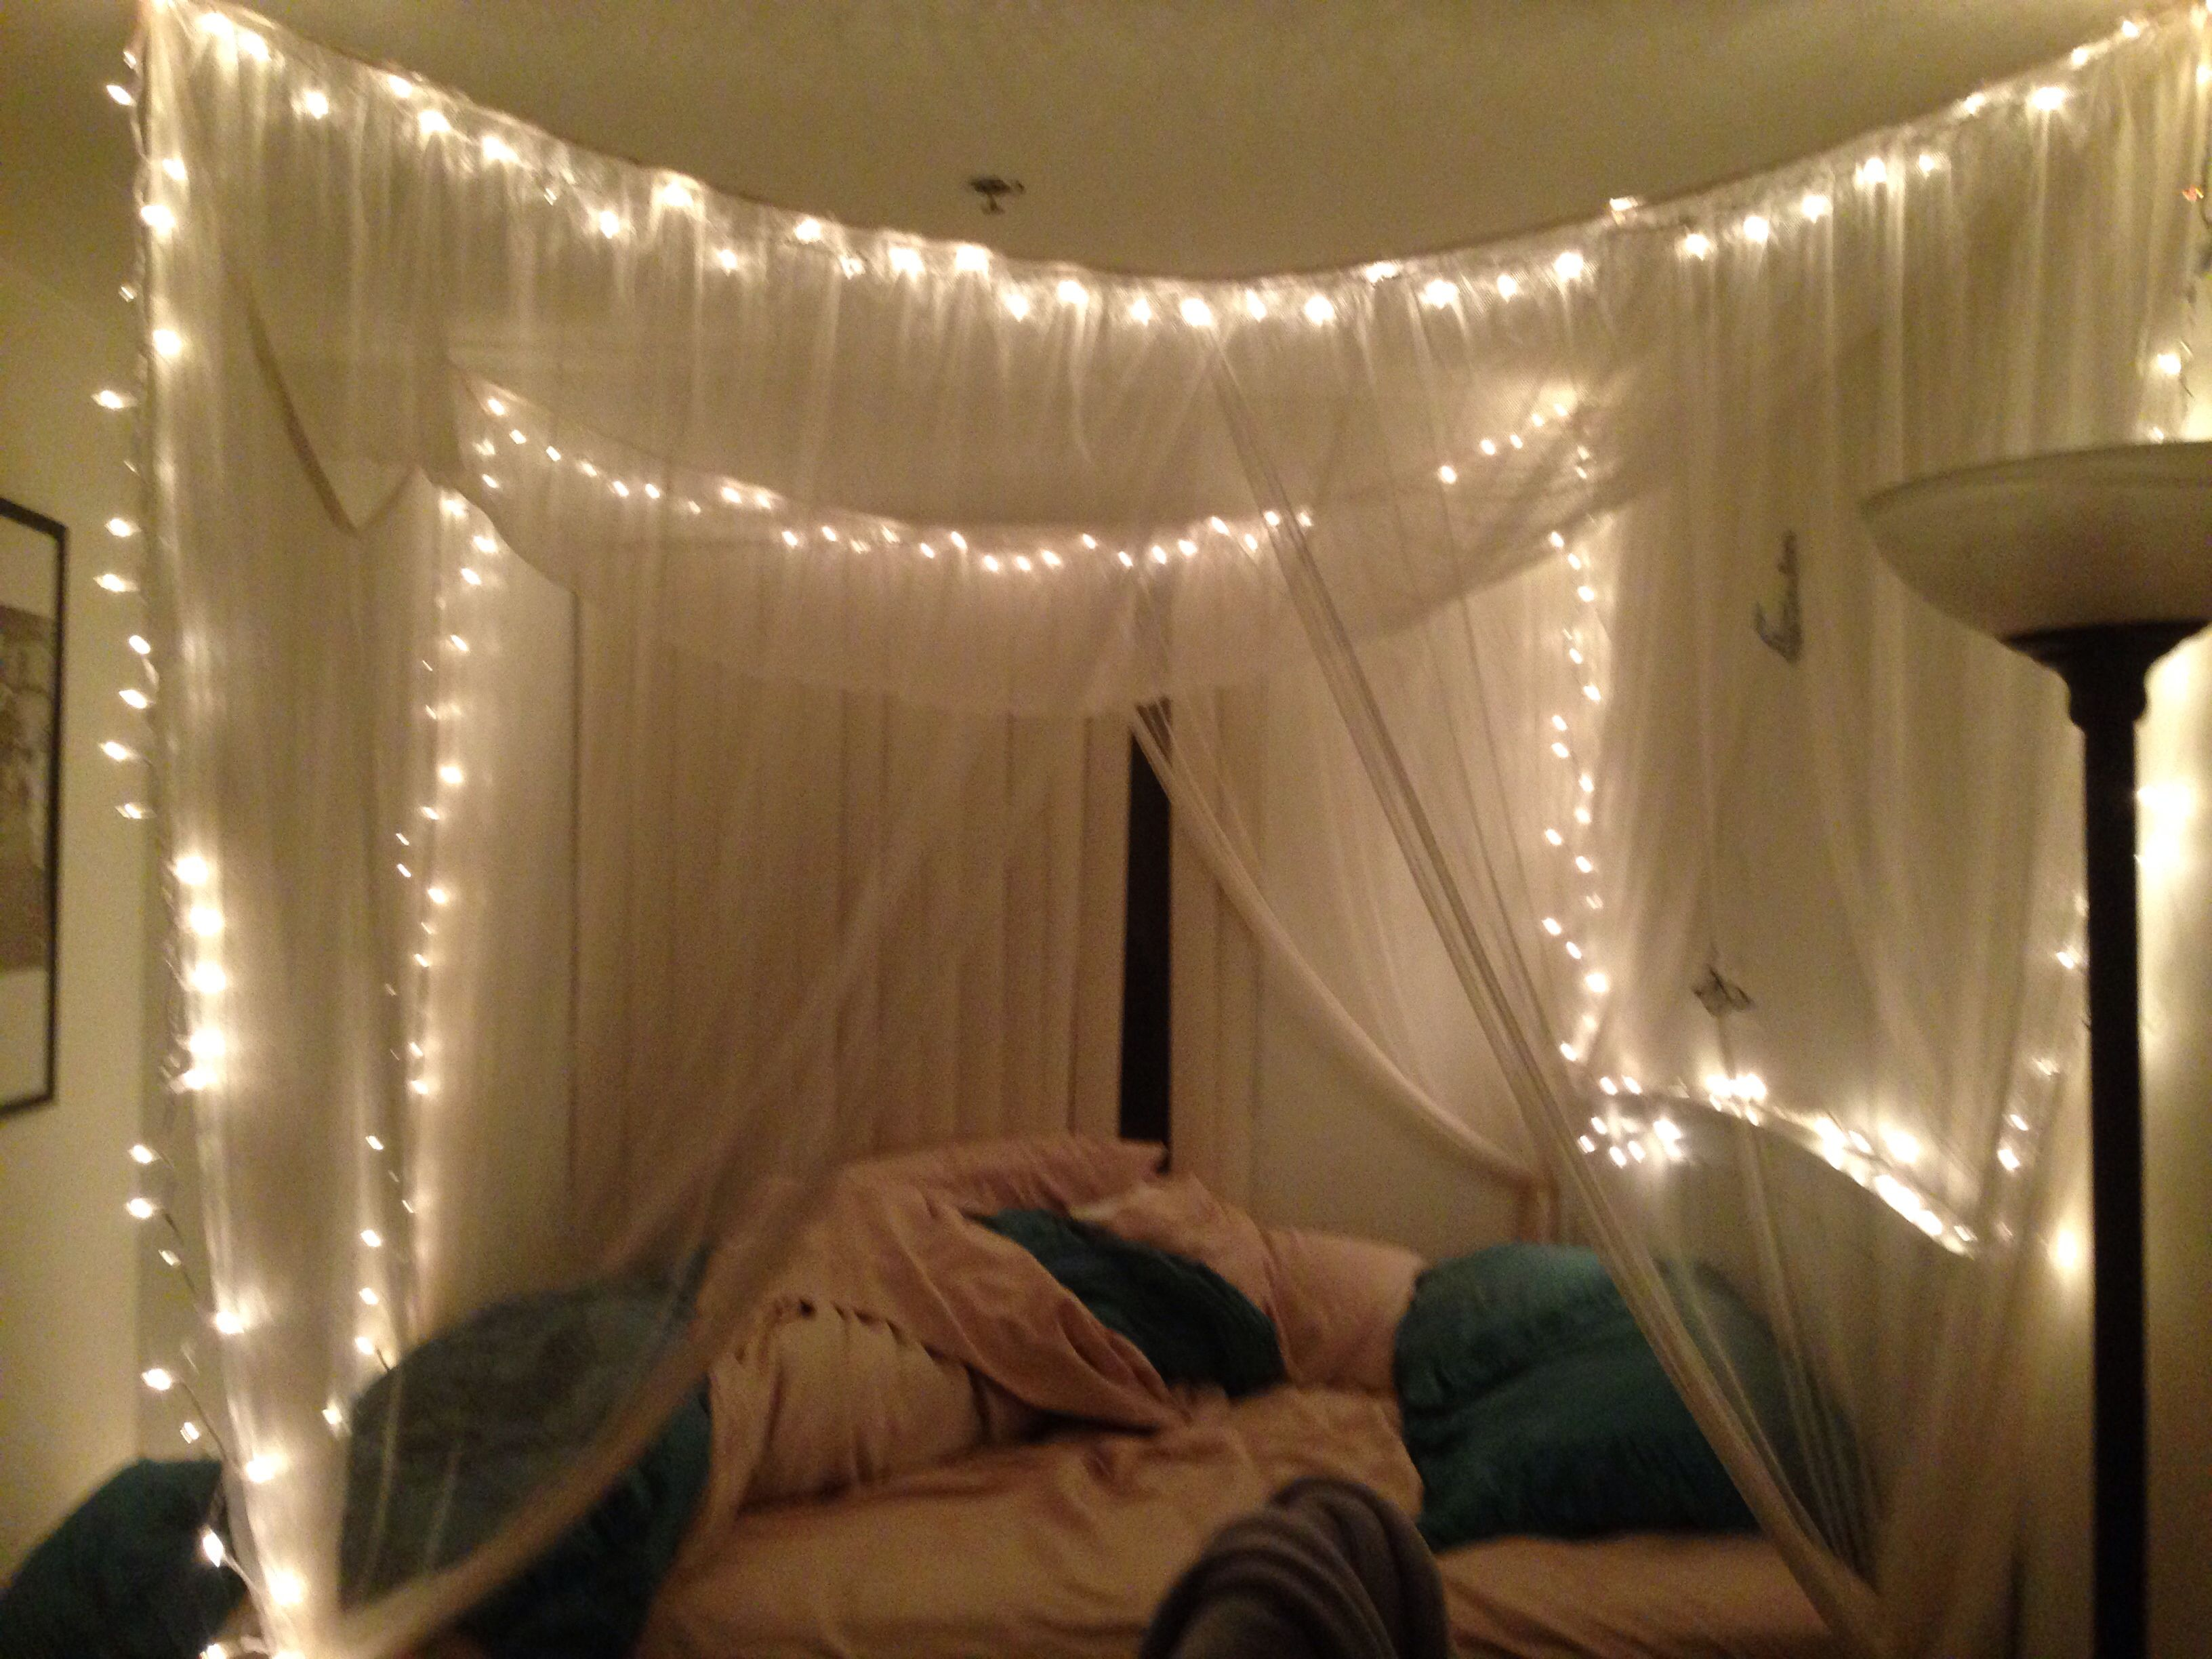 17 best ideas about bed canopy lights on pinterest | bed canopy